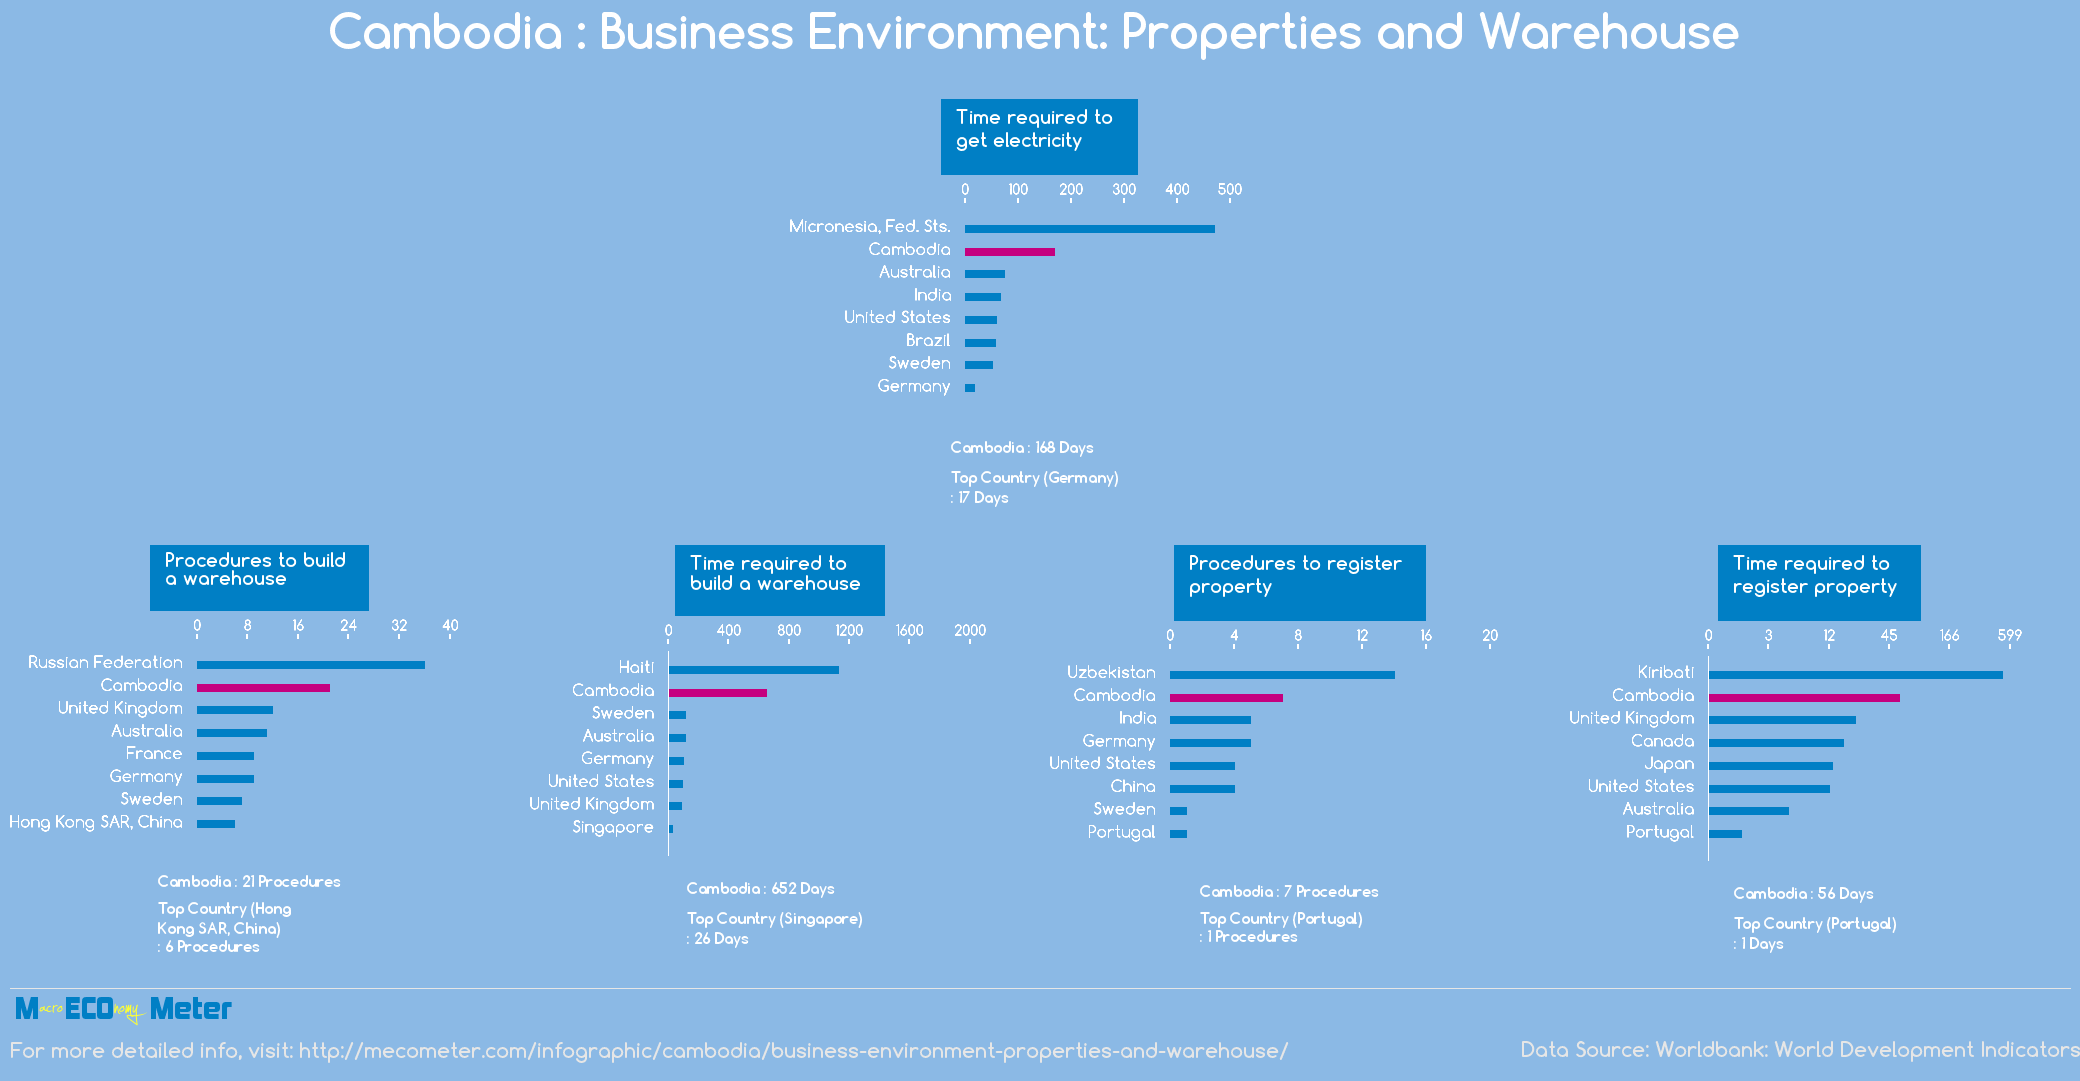 Cambodia : Business Environment: Properties and Warehouse